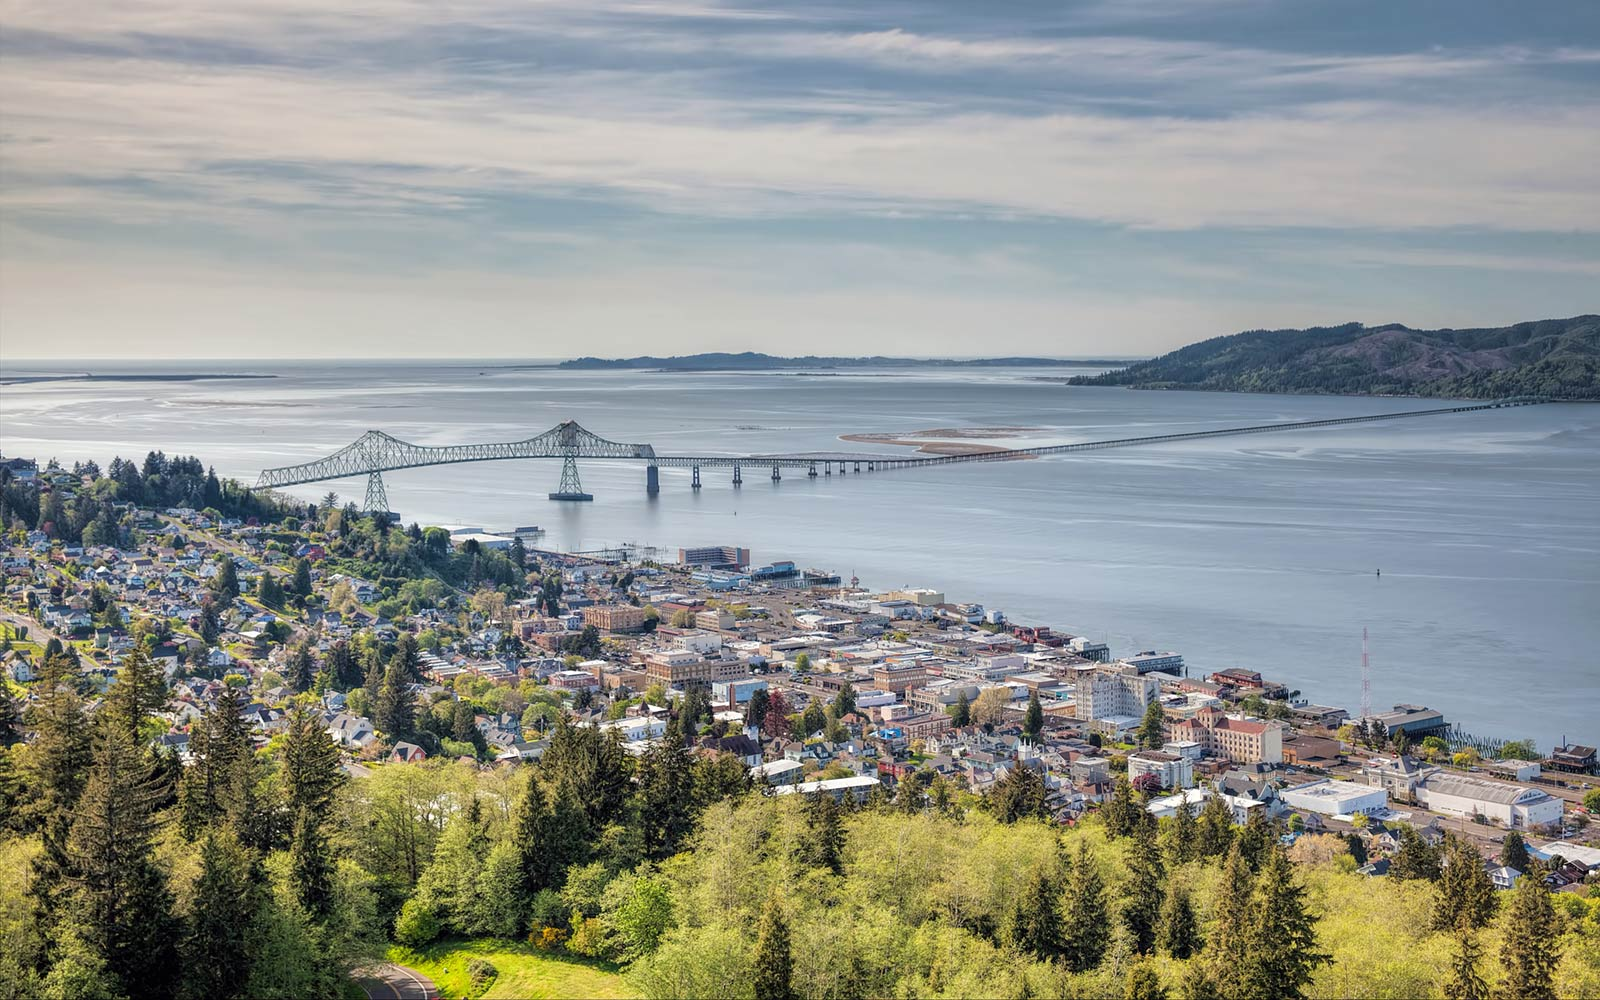 Astoria-Megler Bridge, Oregon, Springtime